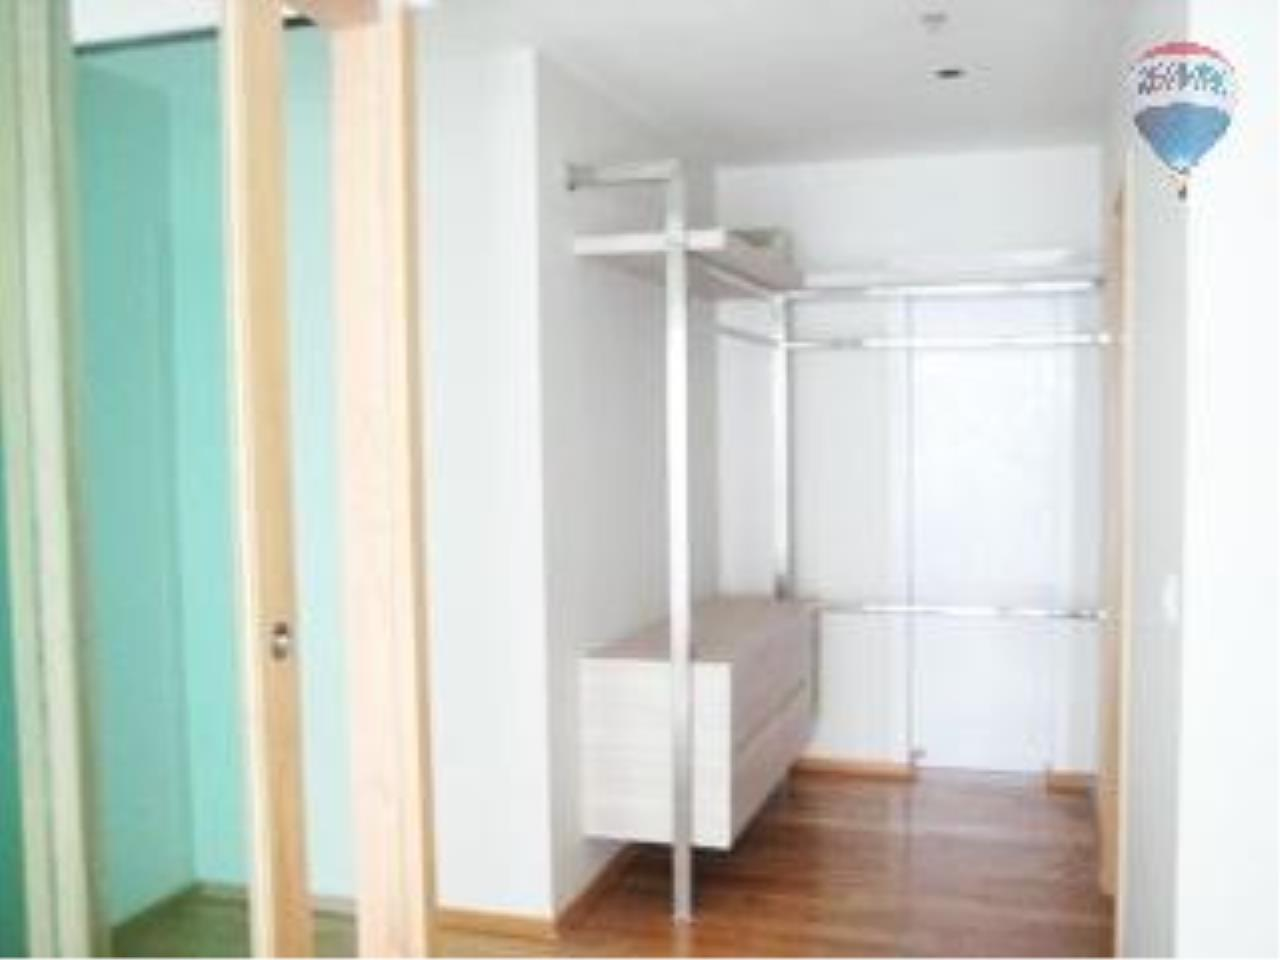 RE/MAX Properties Agency's Condominium for sale 1 bedroom 72 Sq.m. at Emporio Place 7